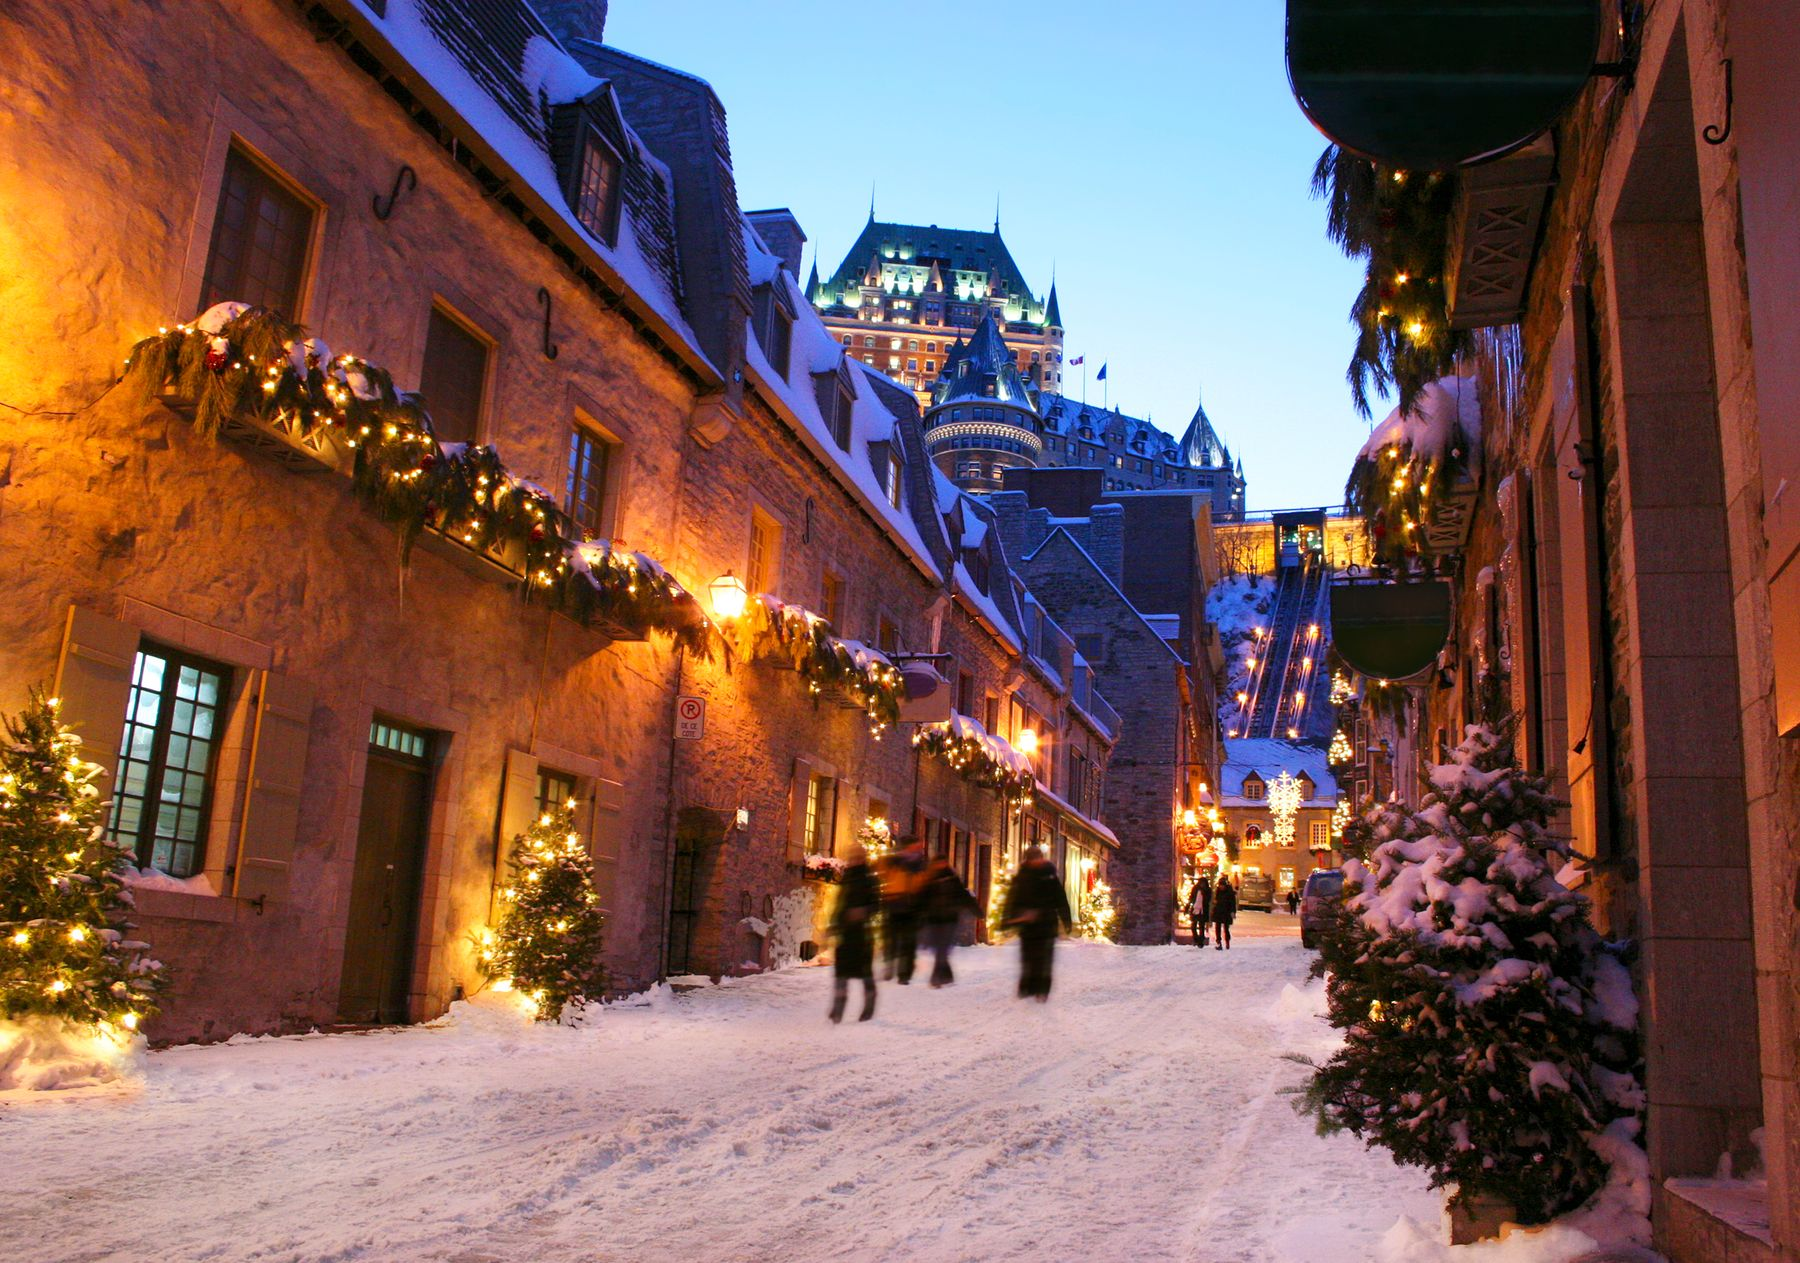 snowy streets before sunset in Old Quebec with the Chateau Frontenac in the background